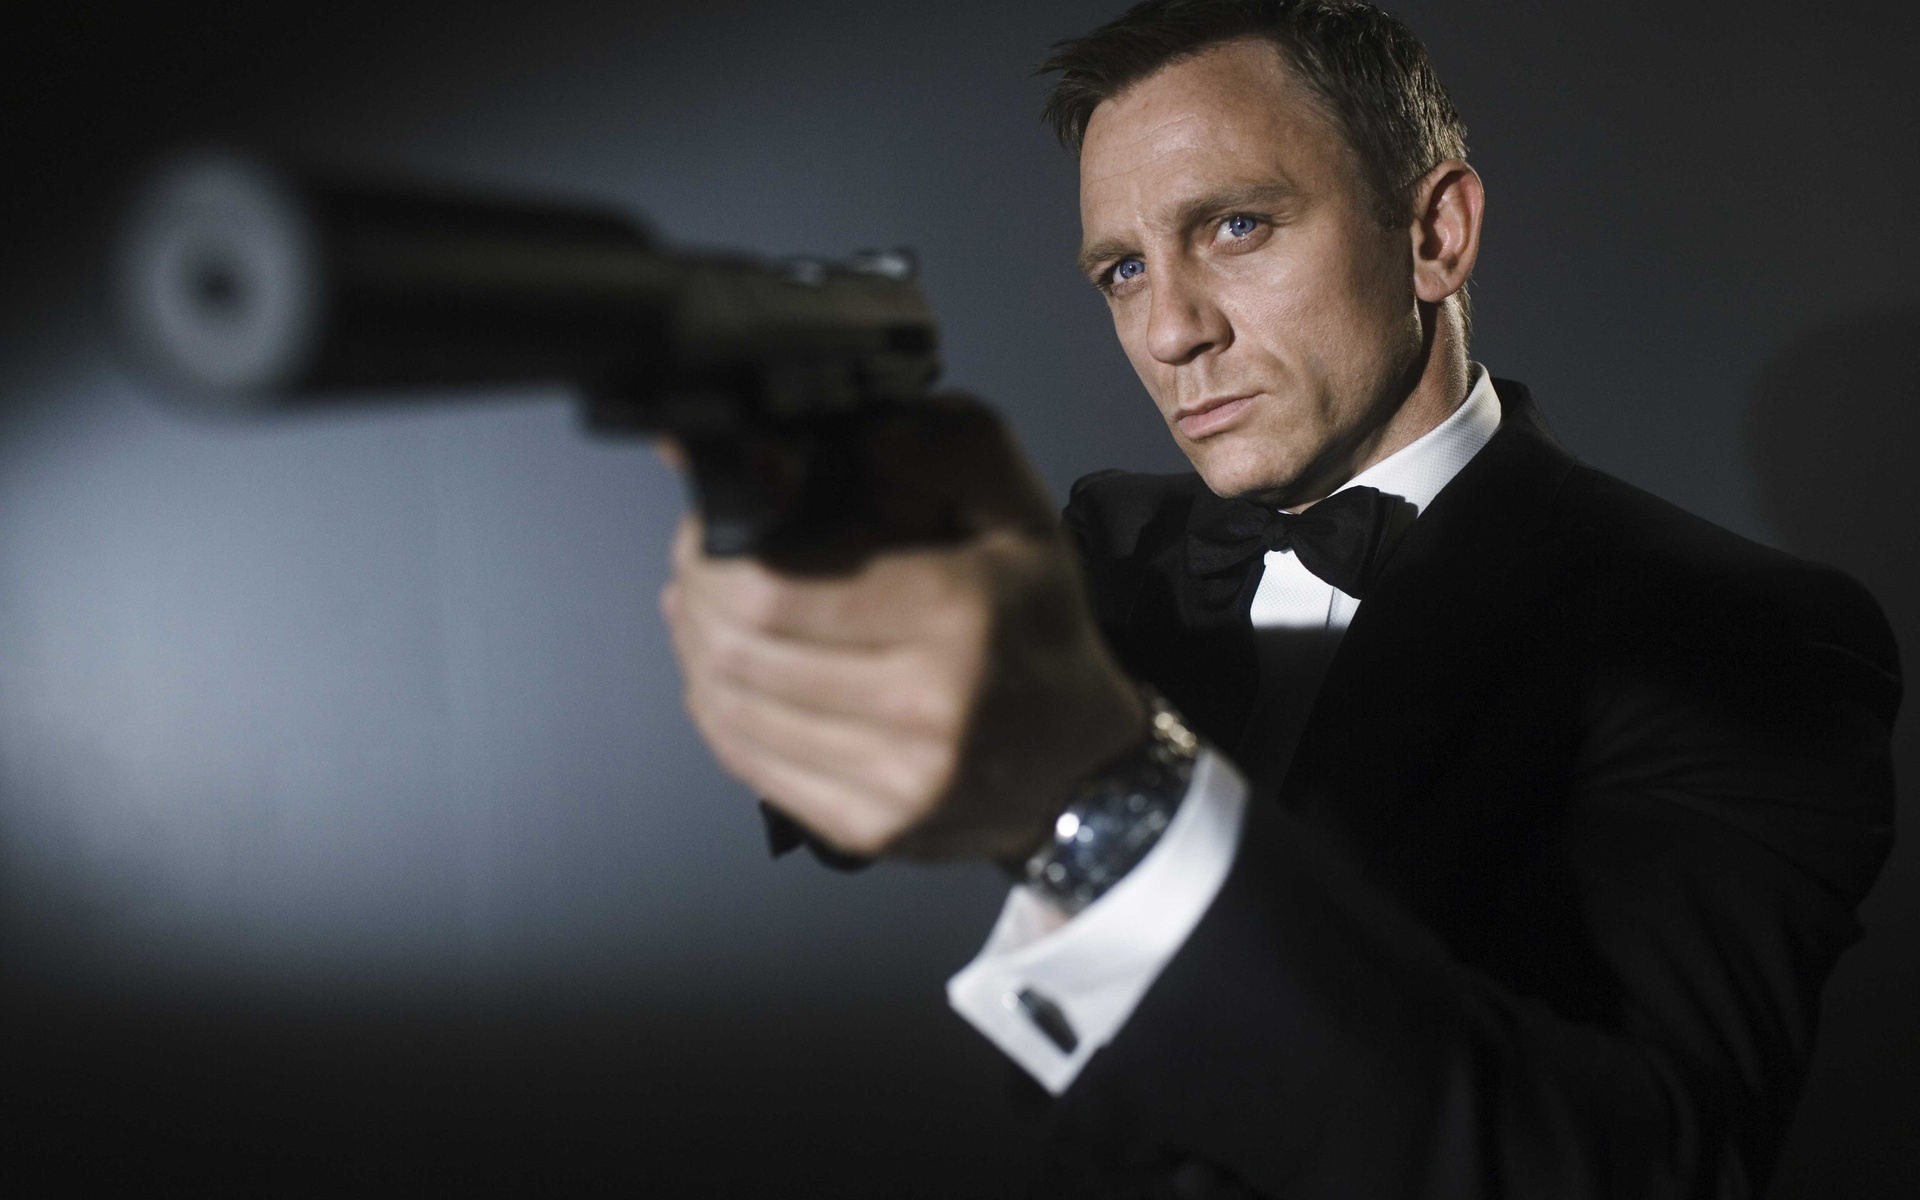 50237 download wallpaper Cinema, People, Men, James Bond screensavers and pictures for free